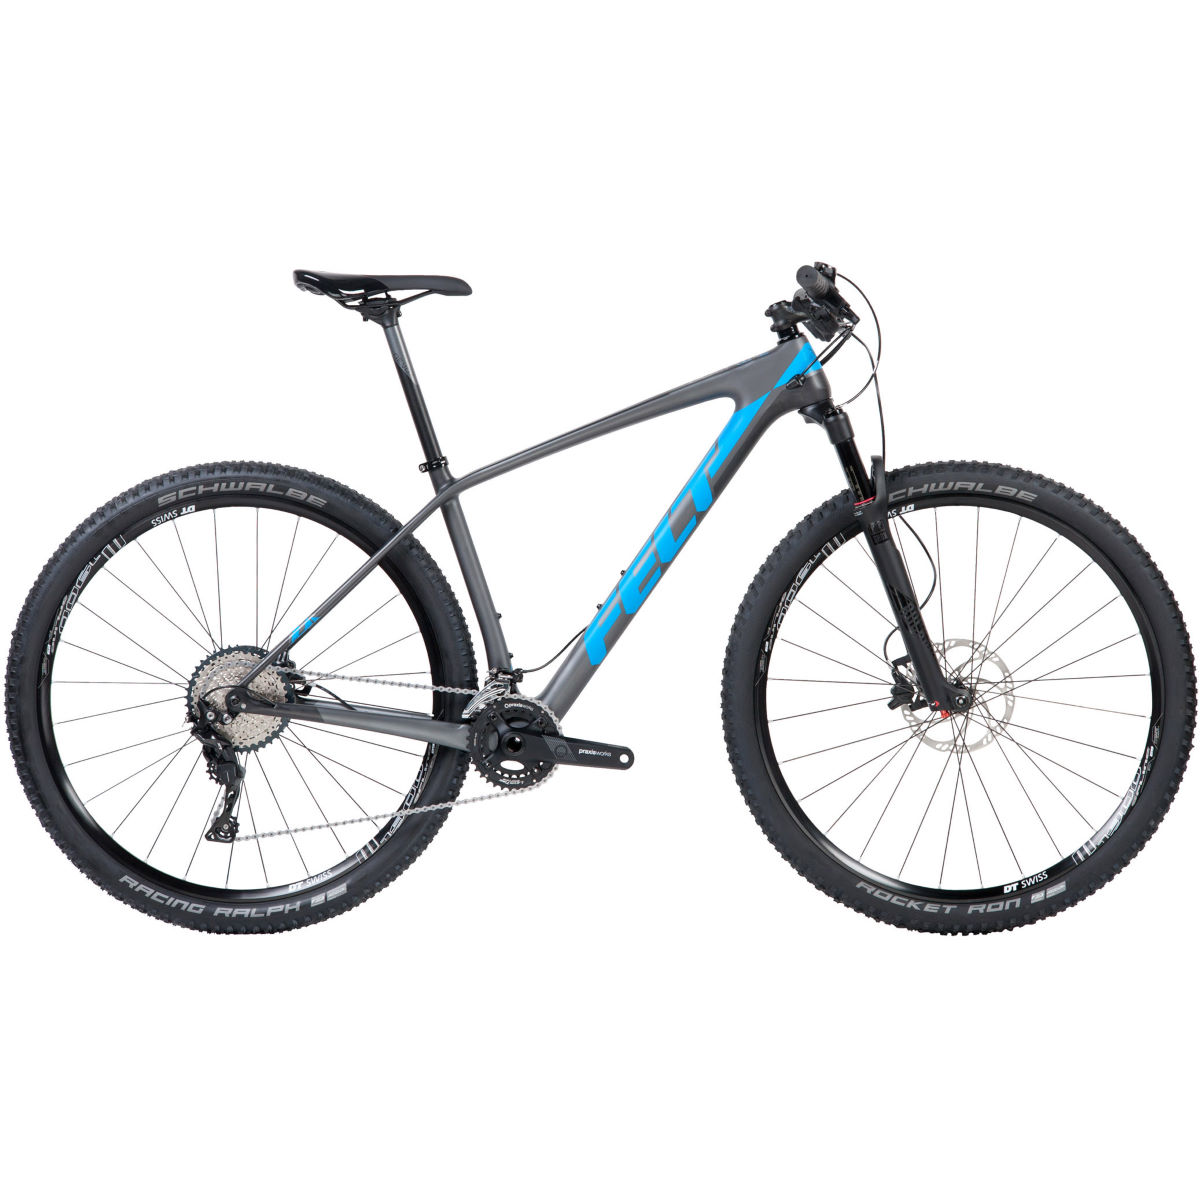 VTT semi-rigide Felt Doctrine 4 XC (carbone, 2018) - 20'' Stock Bike